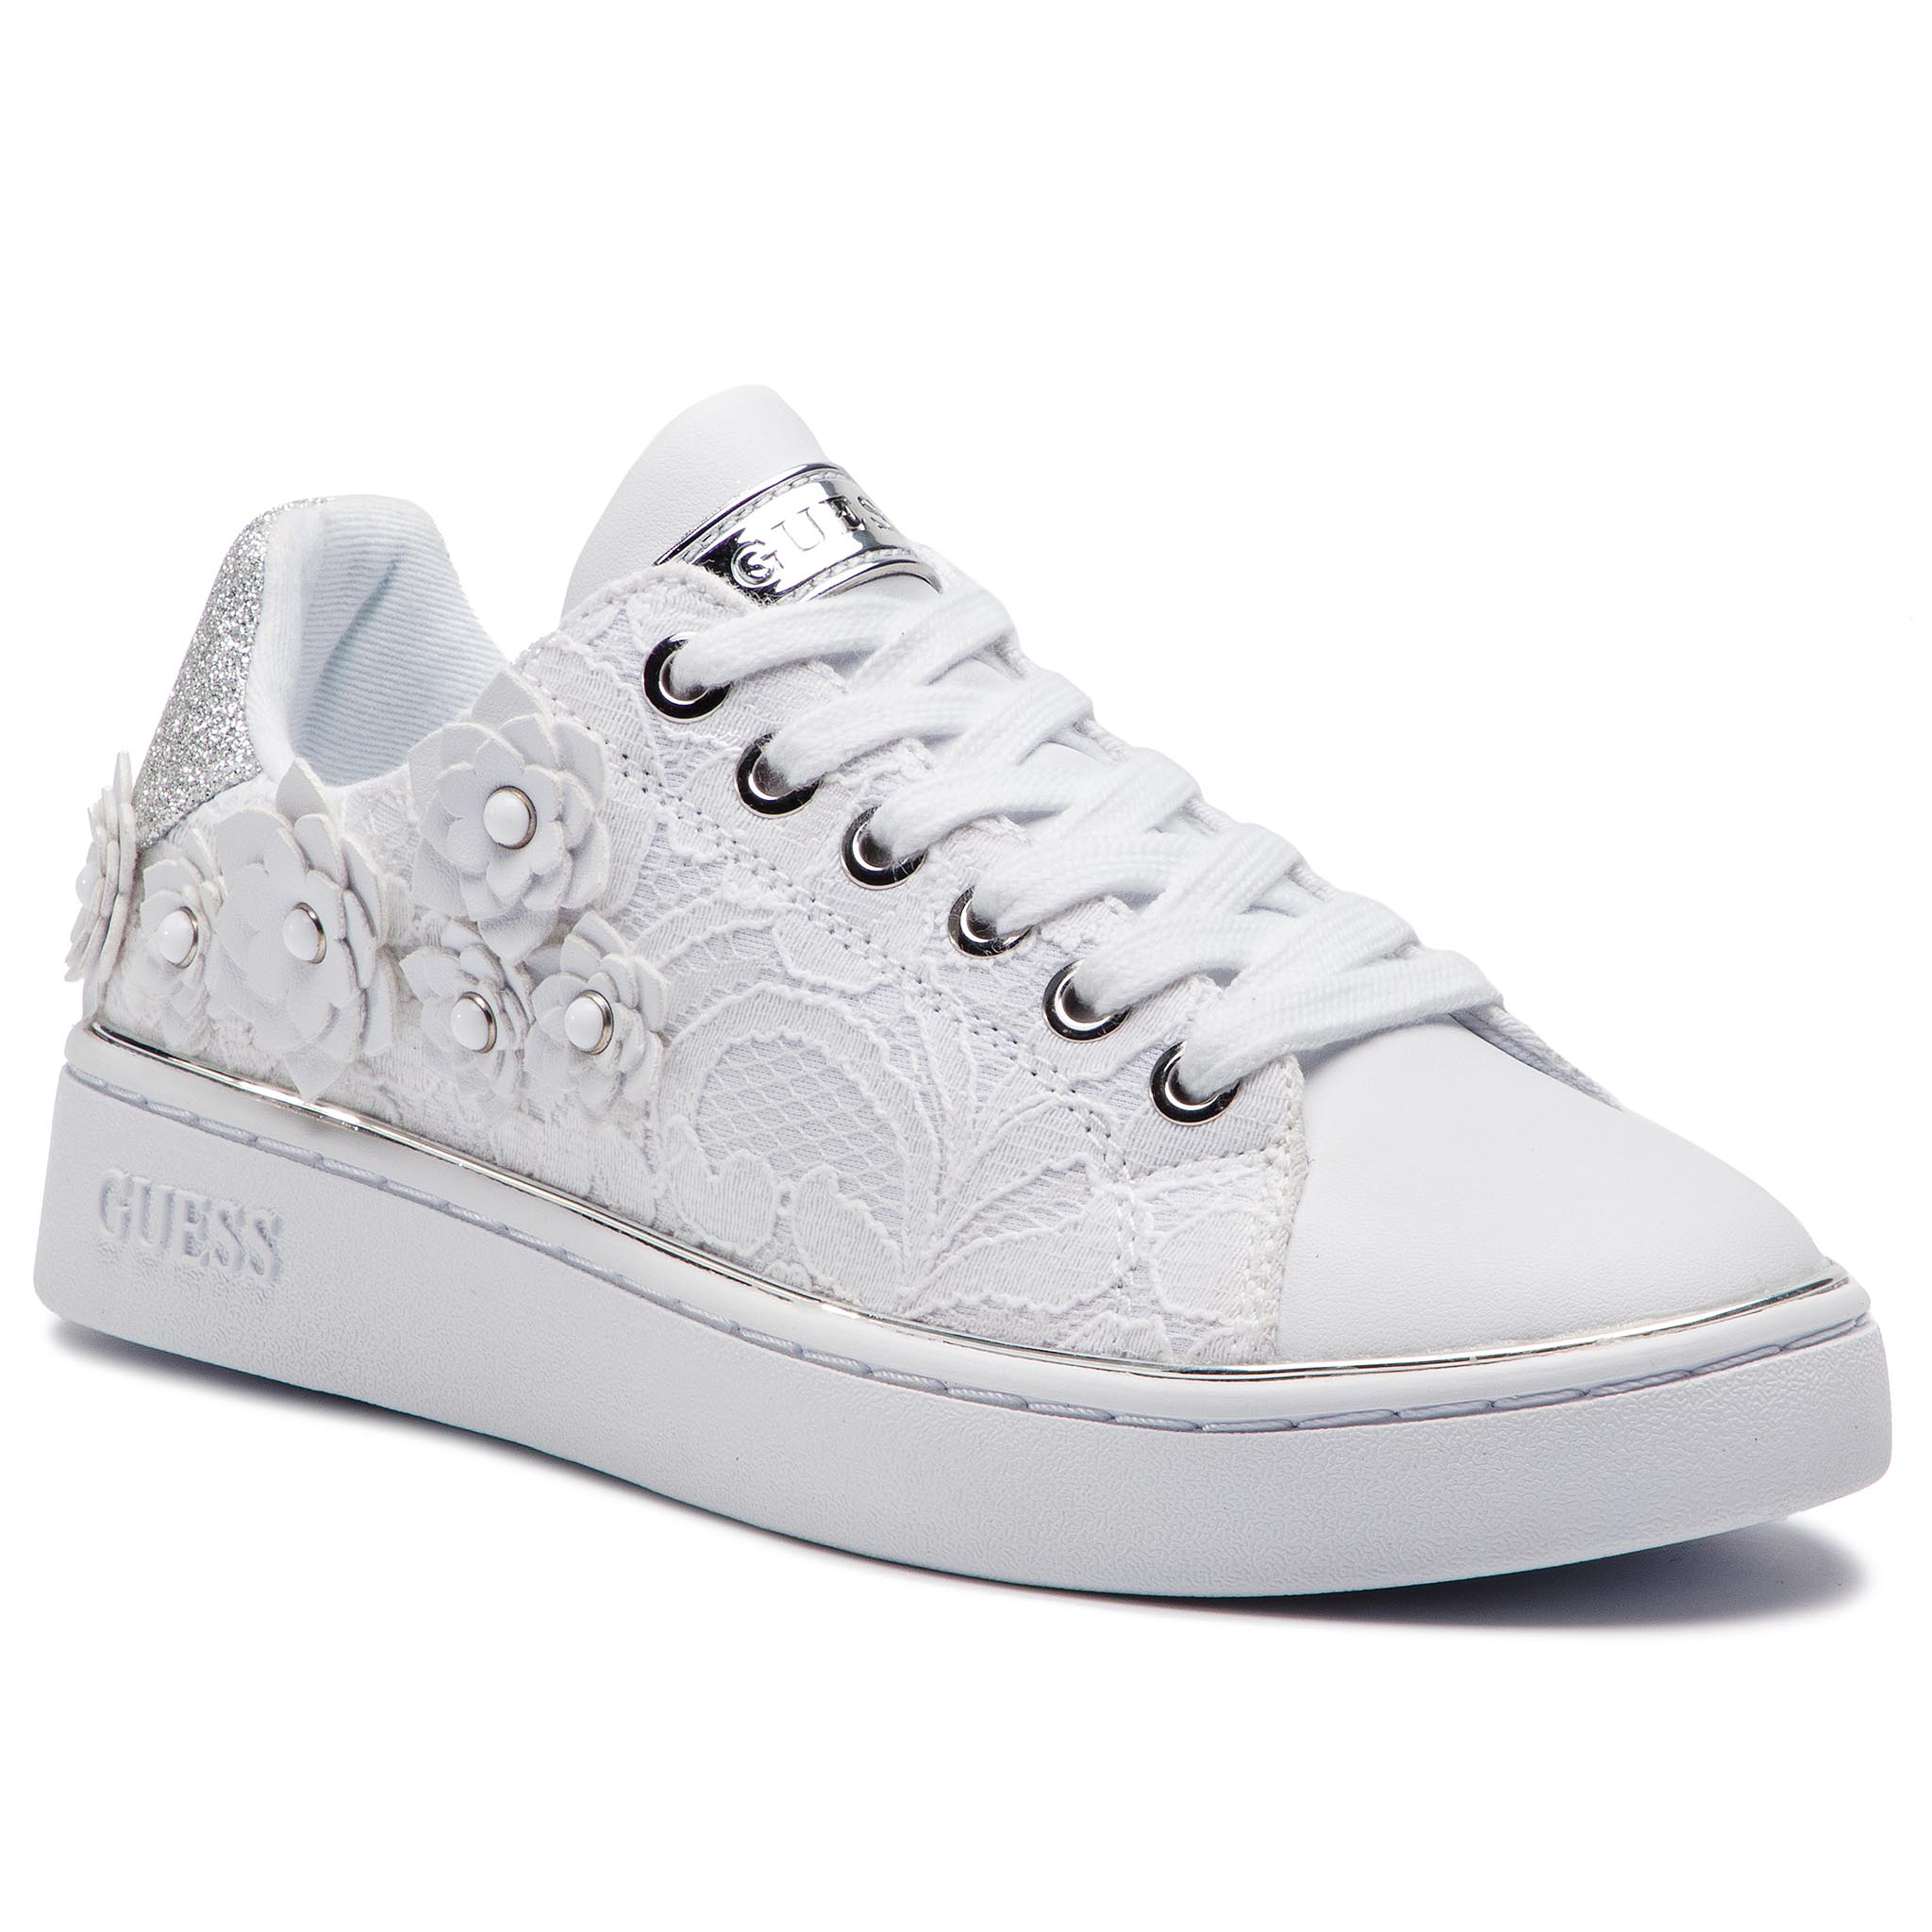 Sneakers GUESS - Bessia FL5BES LAC12 WHITE